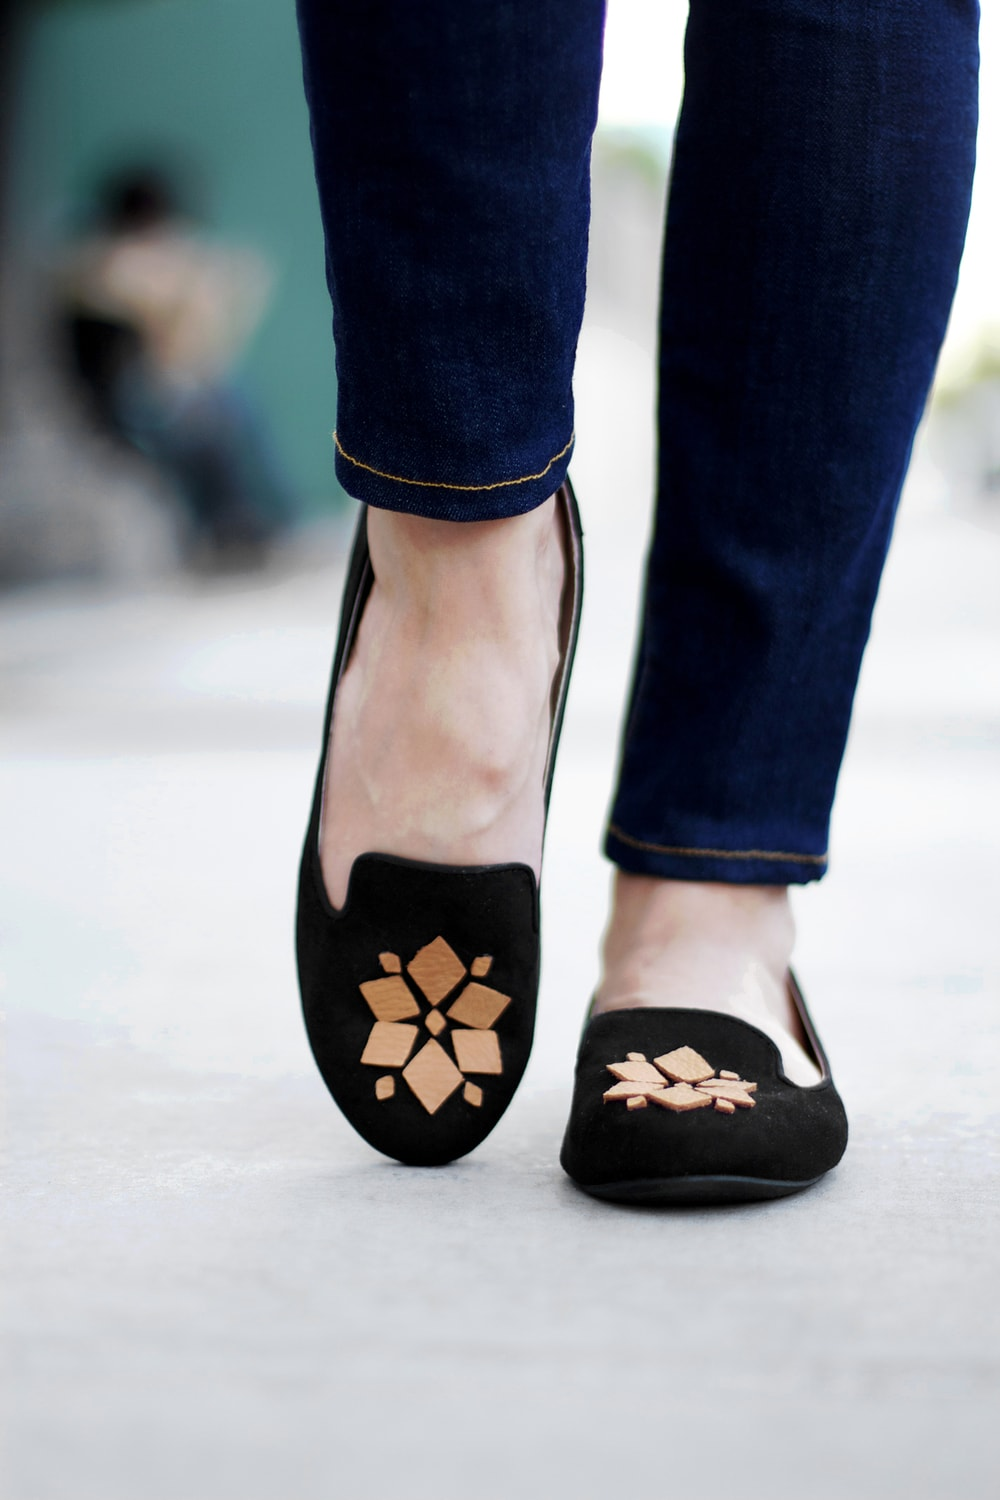 loafers with leather embellishment made with Cricut